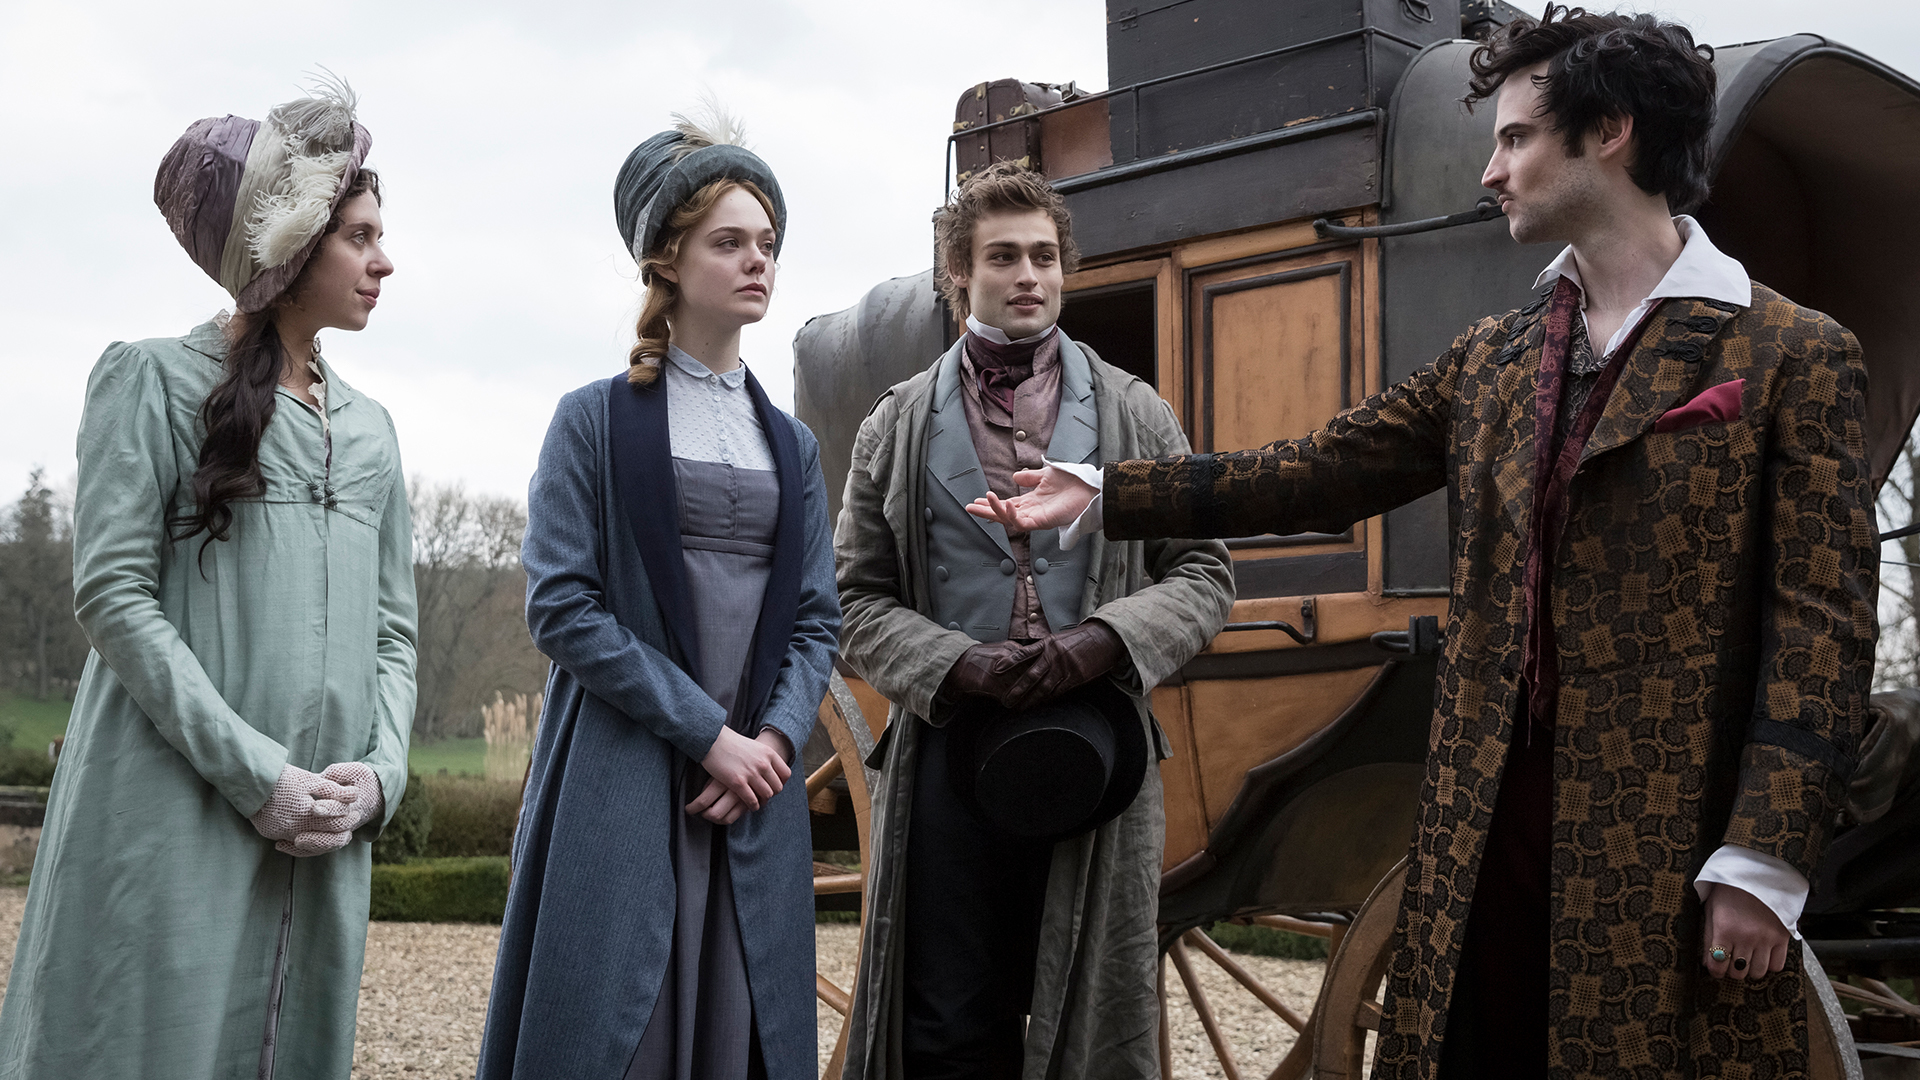 Tom Sturridge, Elle Fanning, Bel Powley, and Douglas Booth in Mary Shelley (2017)